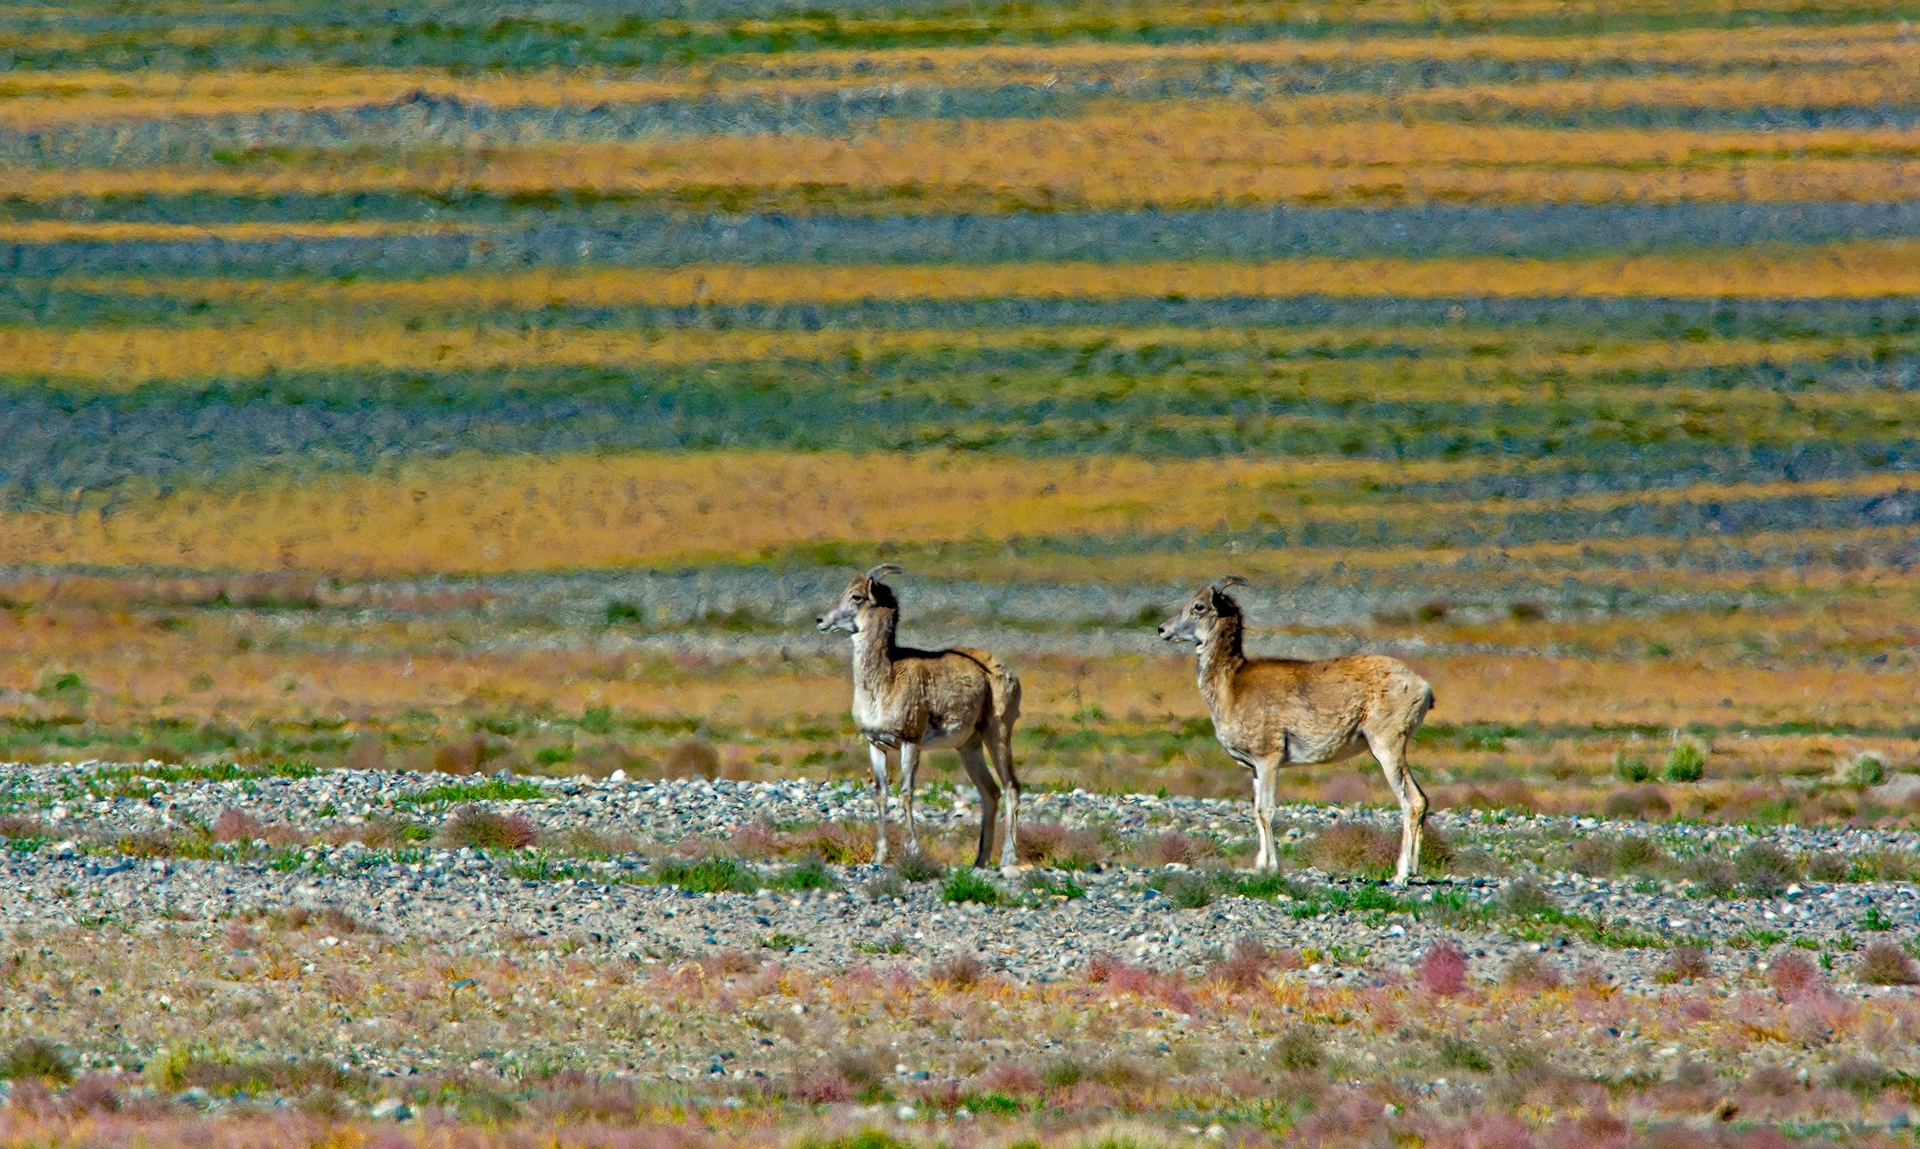 Only about 300-400 Tibetan argali, the largest of all wild sheep, remain in Ladakh, mostly in the eastern Changthang region.